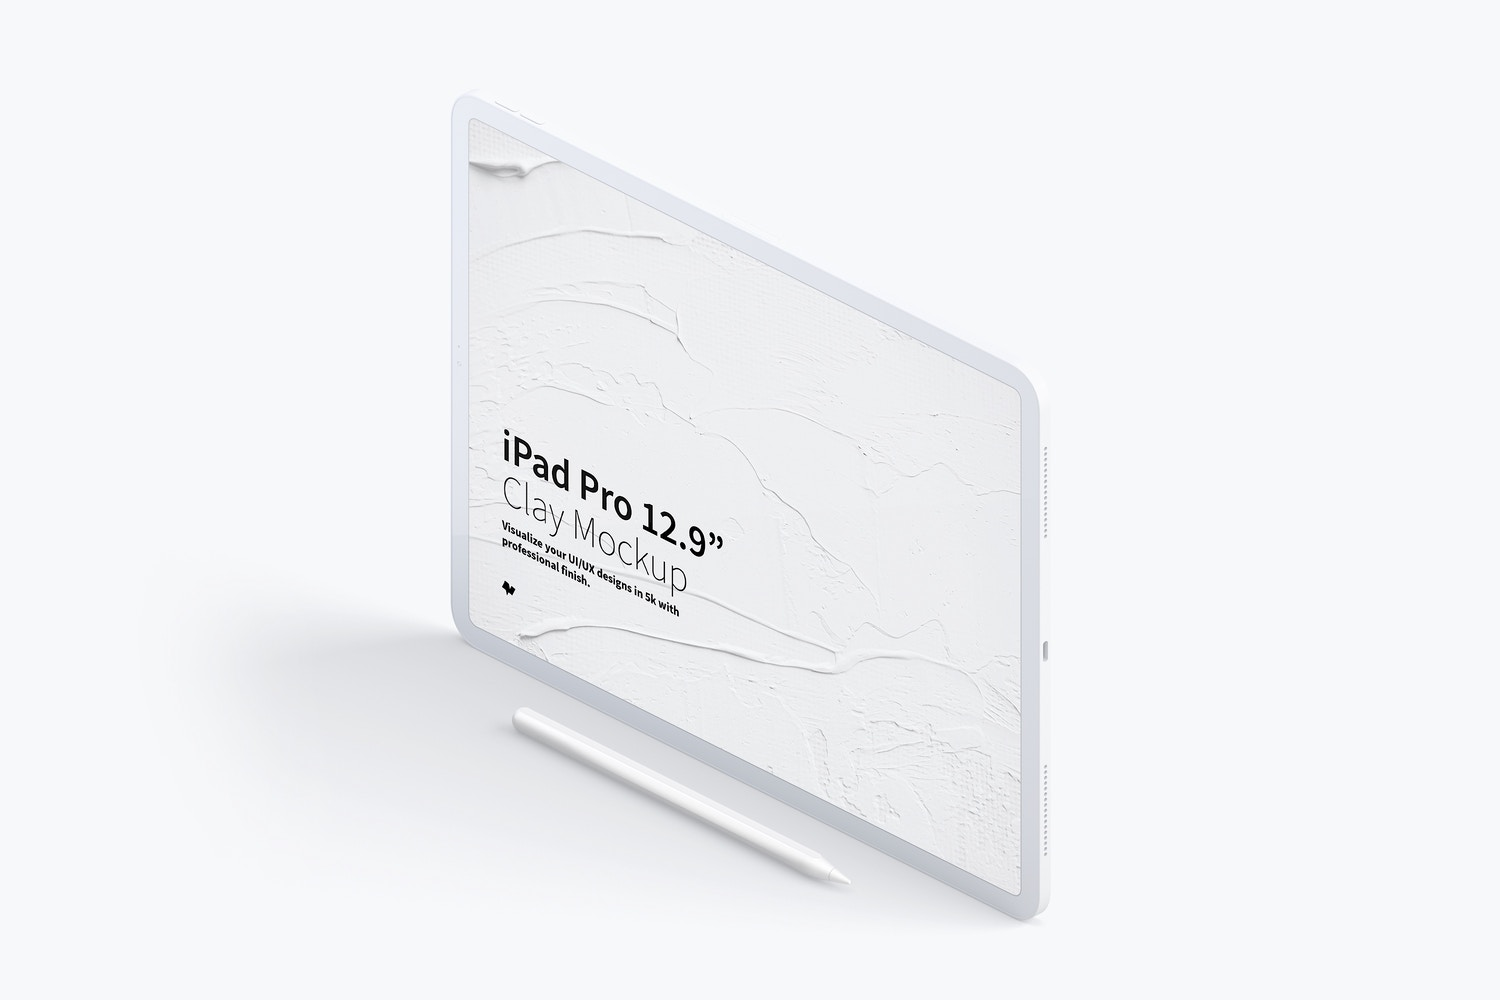 Clay iPad Pro 12.9 Mockup, Isometric Left View 03 by Original Mockups on Original Mockups